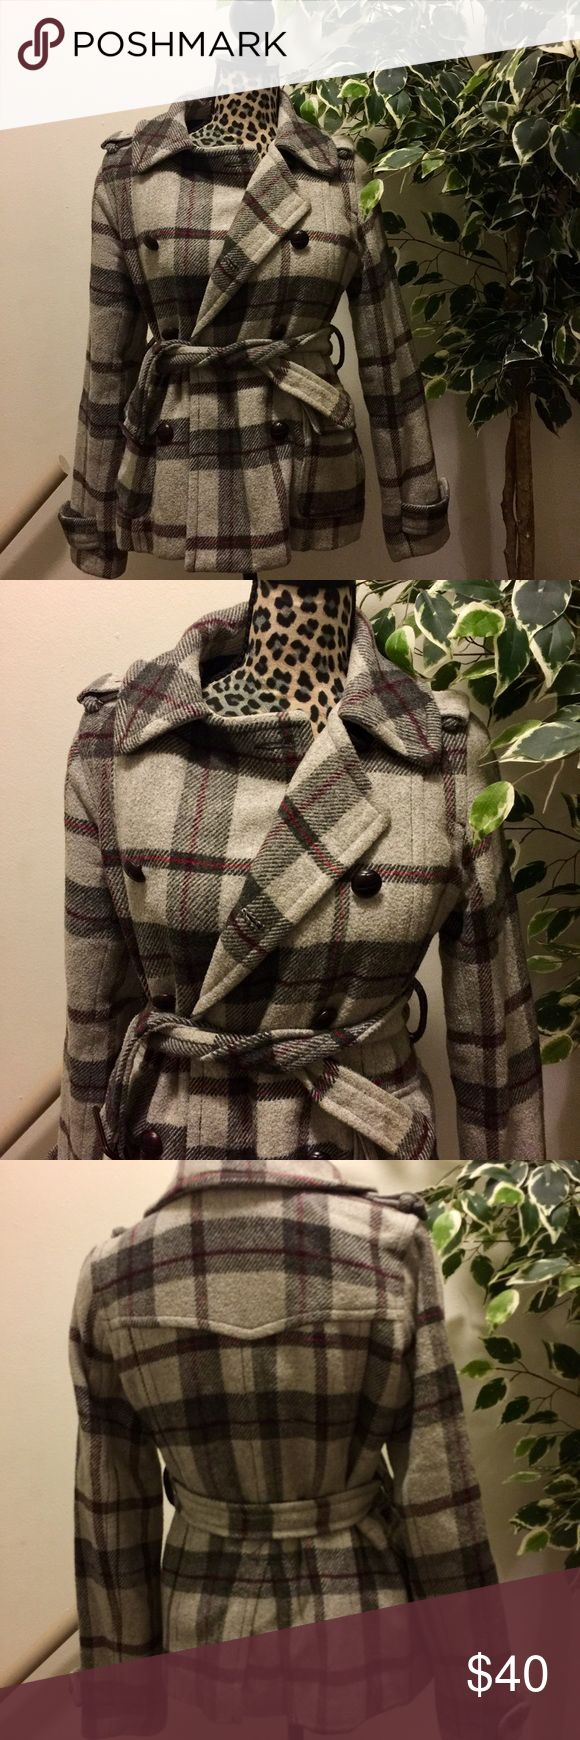 🔥SALE🔥 American Eagle Outfitters Plaid Wool Coat Super Cute Plaid Coat That's Warm And Chic!! Size Small, Has Double Row Of Buttons And Belt. Excellent Condition American Eagle Outfitters Jackets & Coats Pea Coats